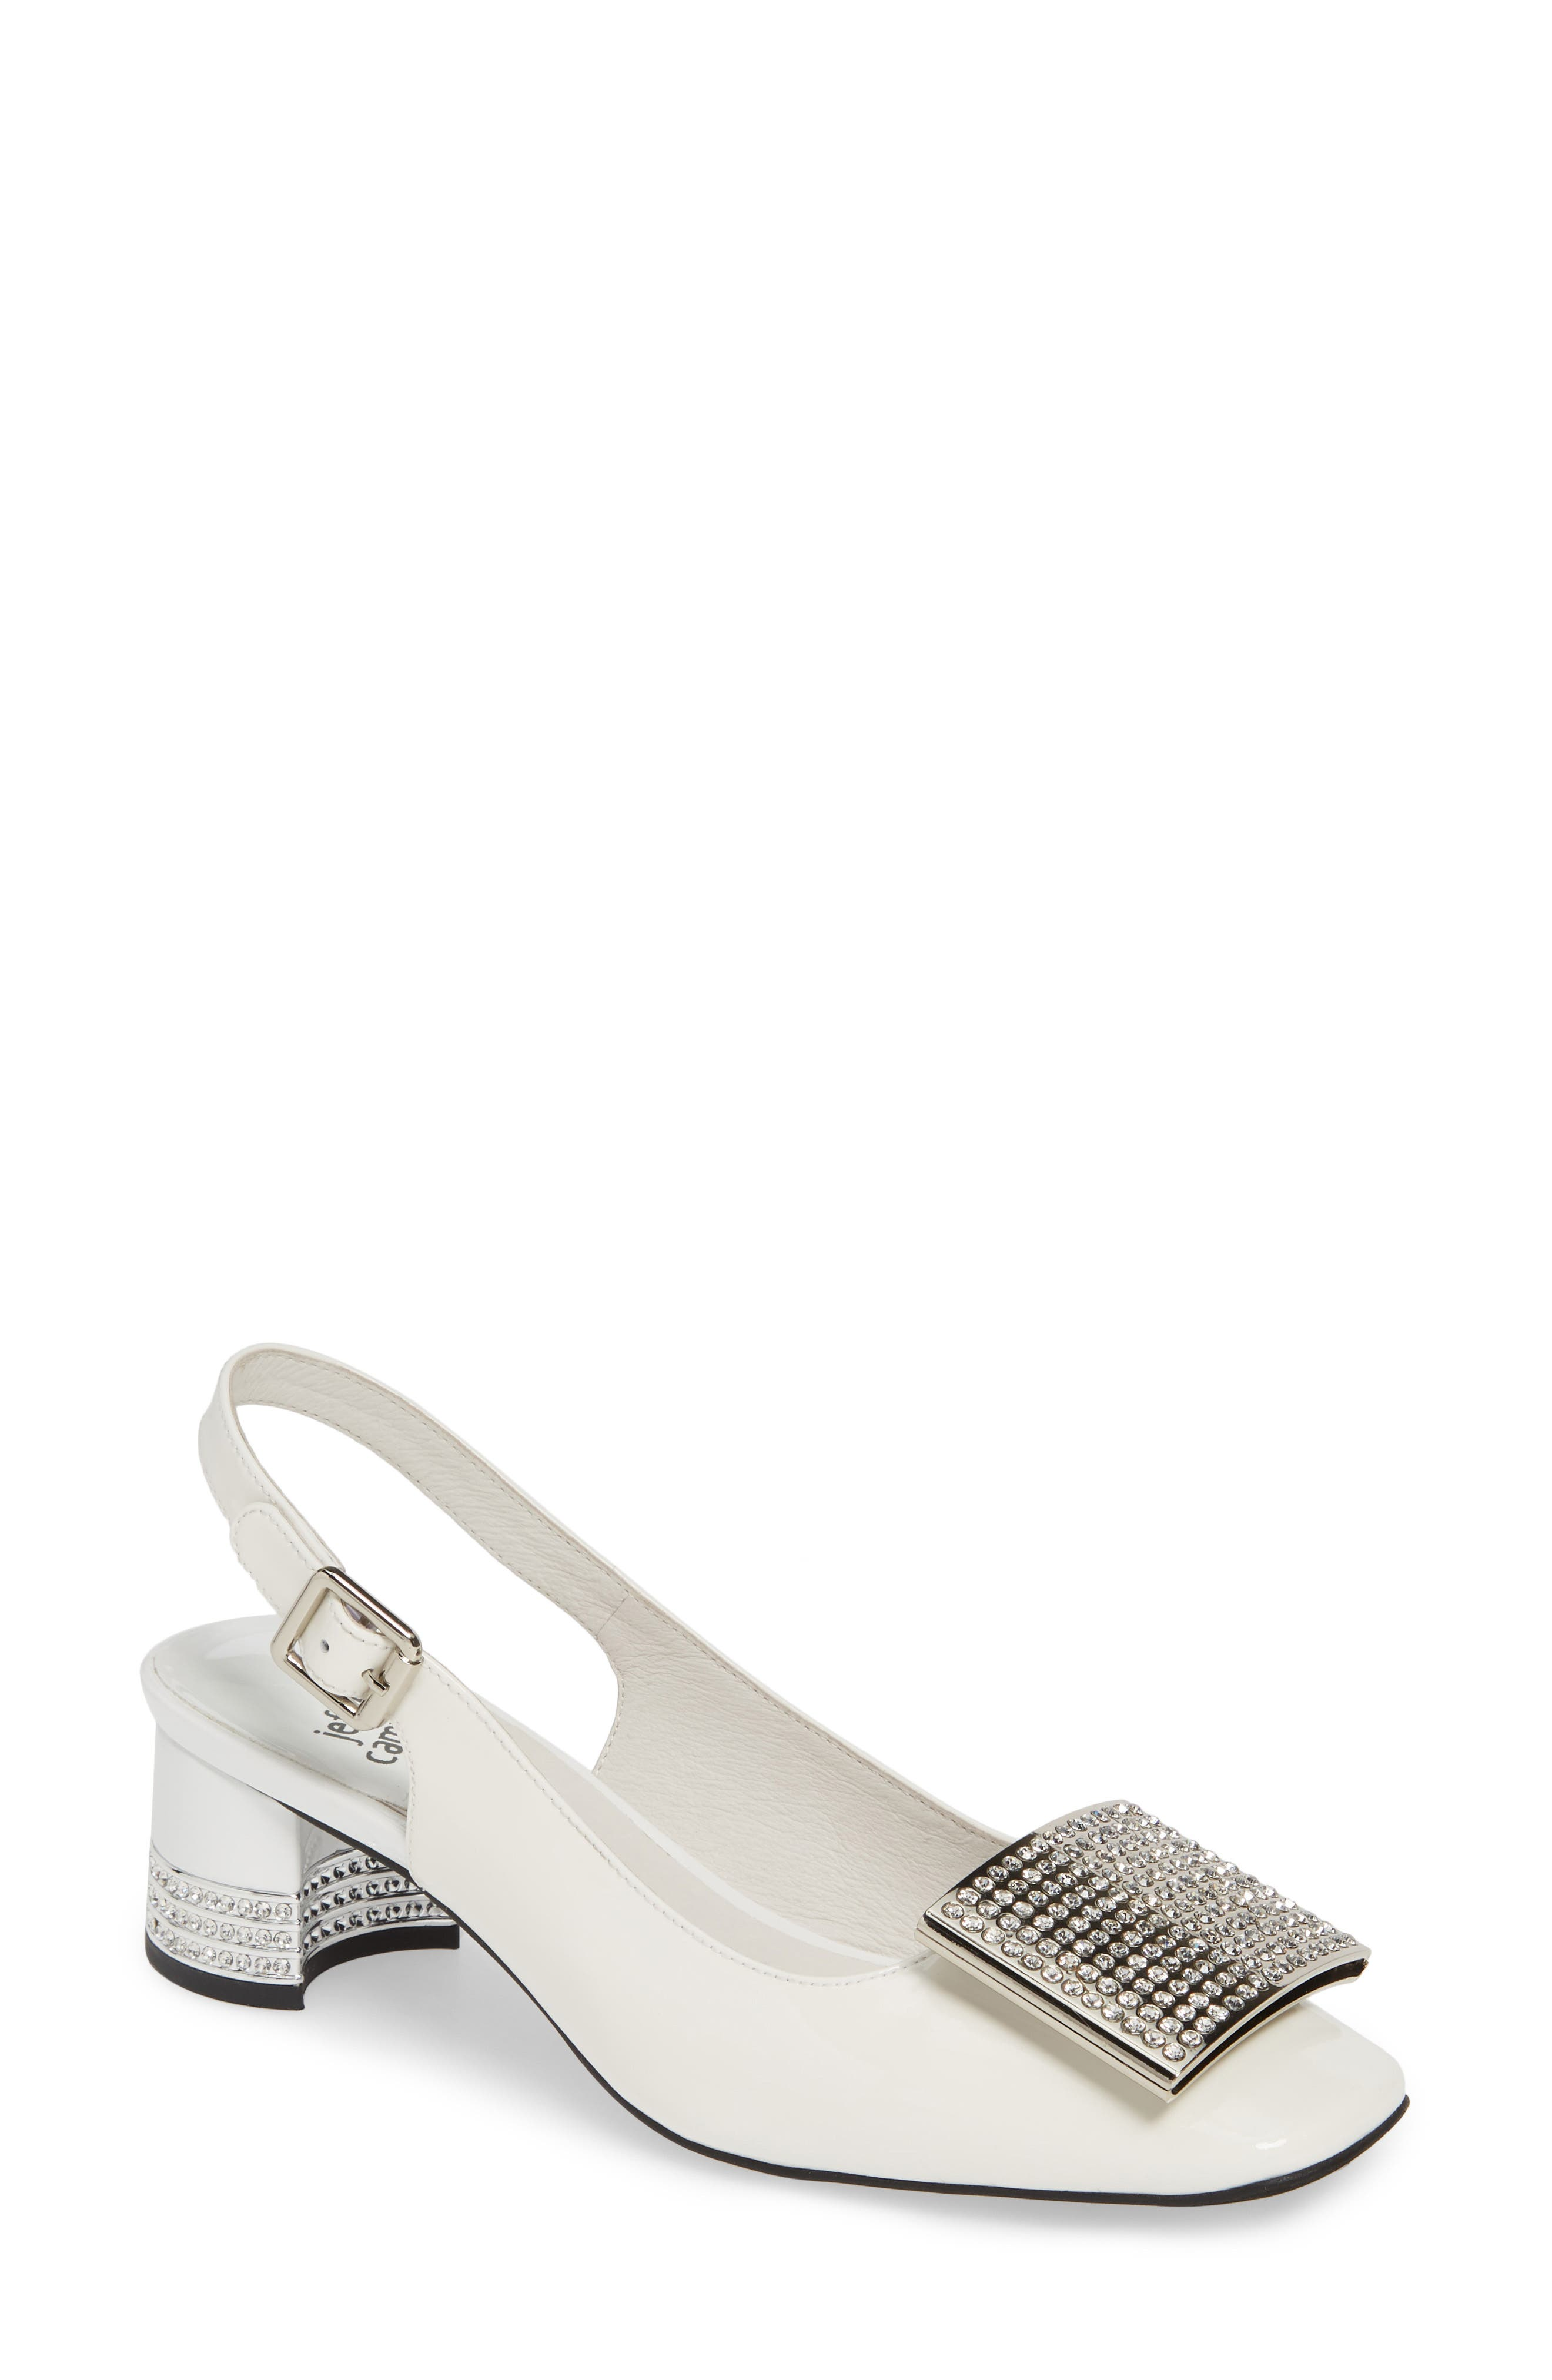 JEFFREY CAMPBELL, Billion Jewel Slingback Pump, Main thumbnail 1, color, WHITE PATENT LEATHER/ SILVER